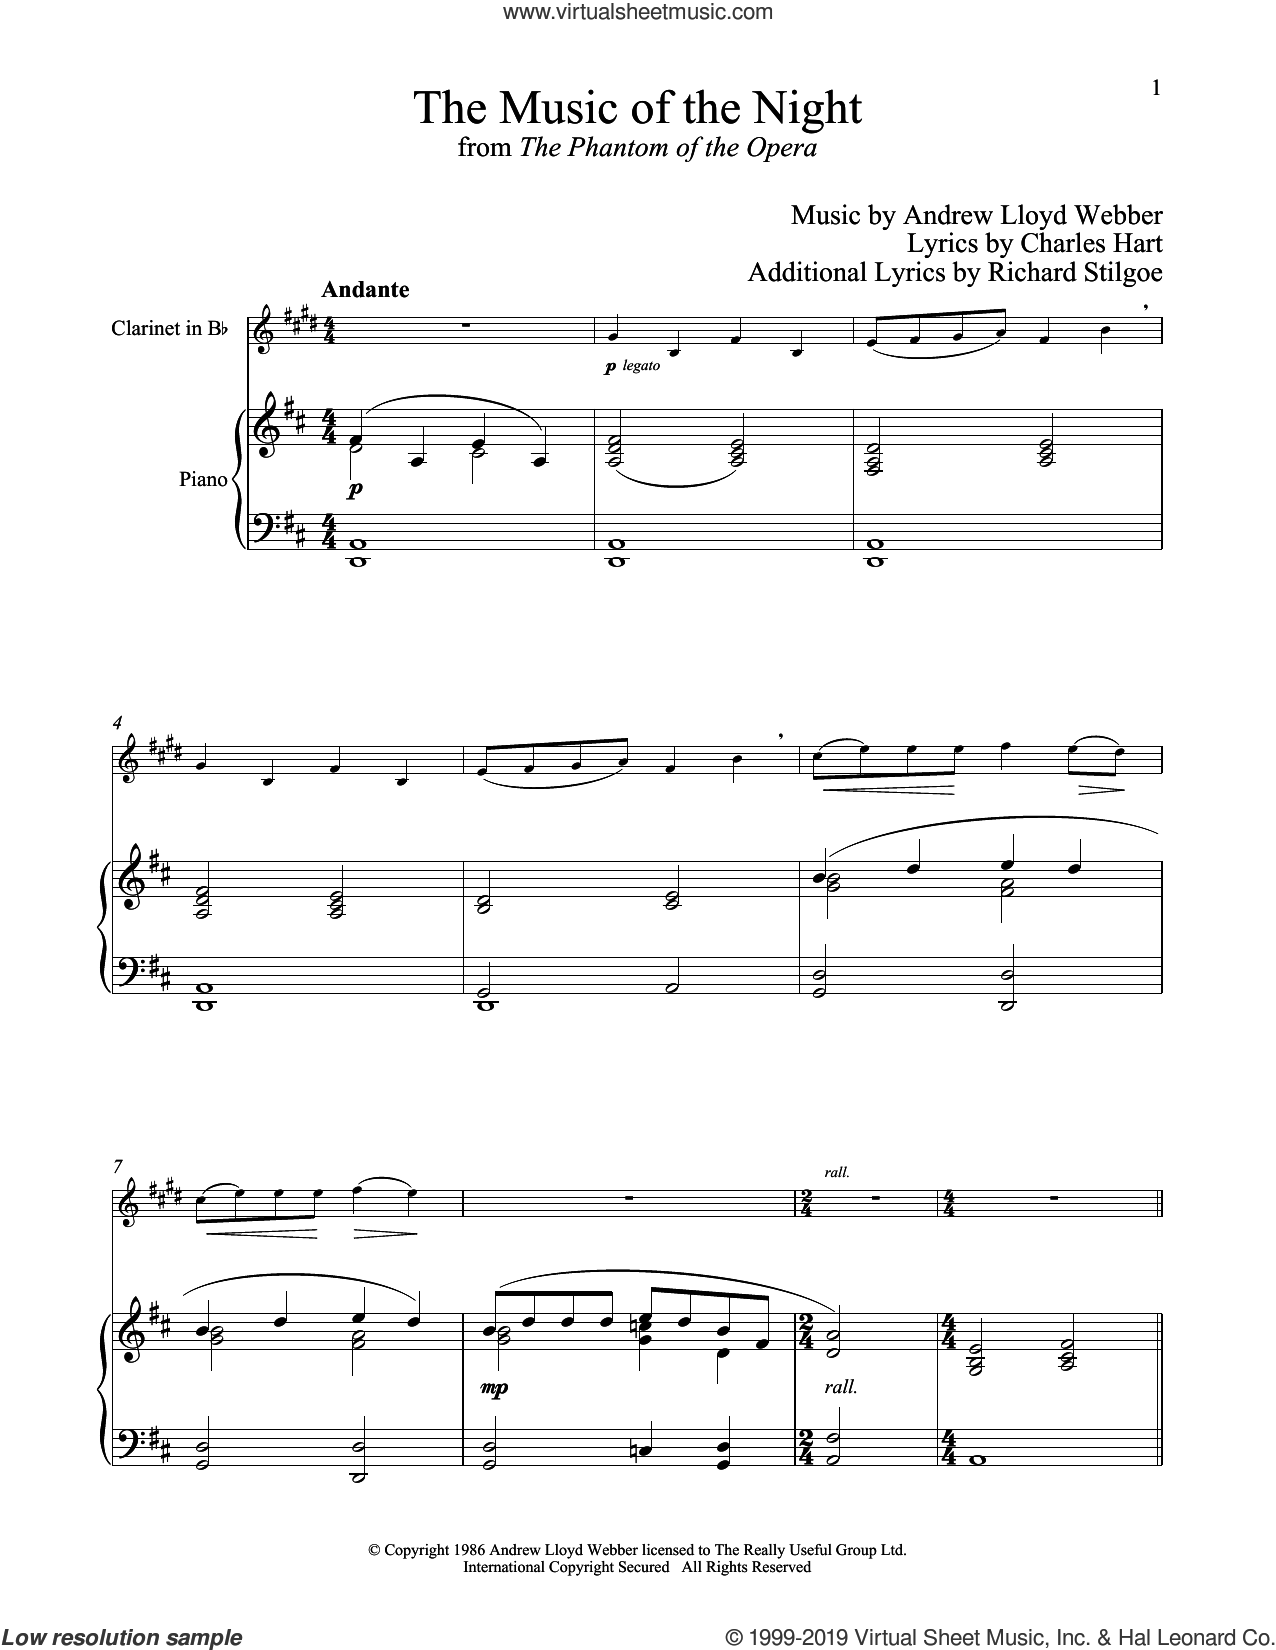 The Music of the Night (from The Phantom of the Opera) sheet music for clarinet and piano by Andrew Lloyd Webber, Charles Hart and Richard Stilgoe, intermediate skill level